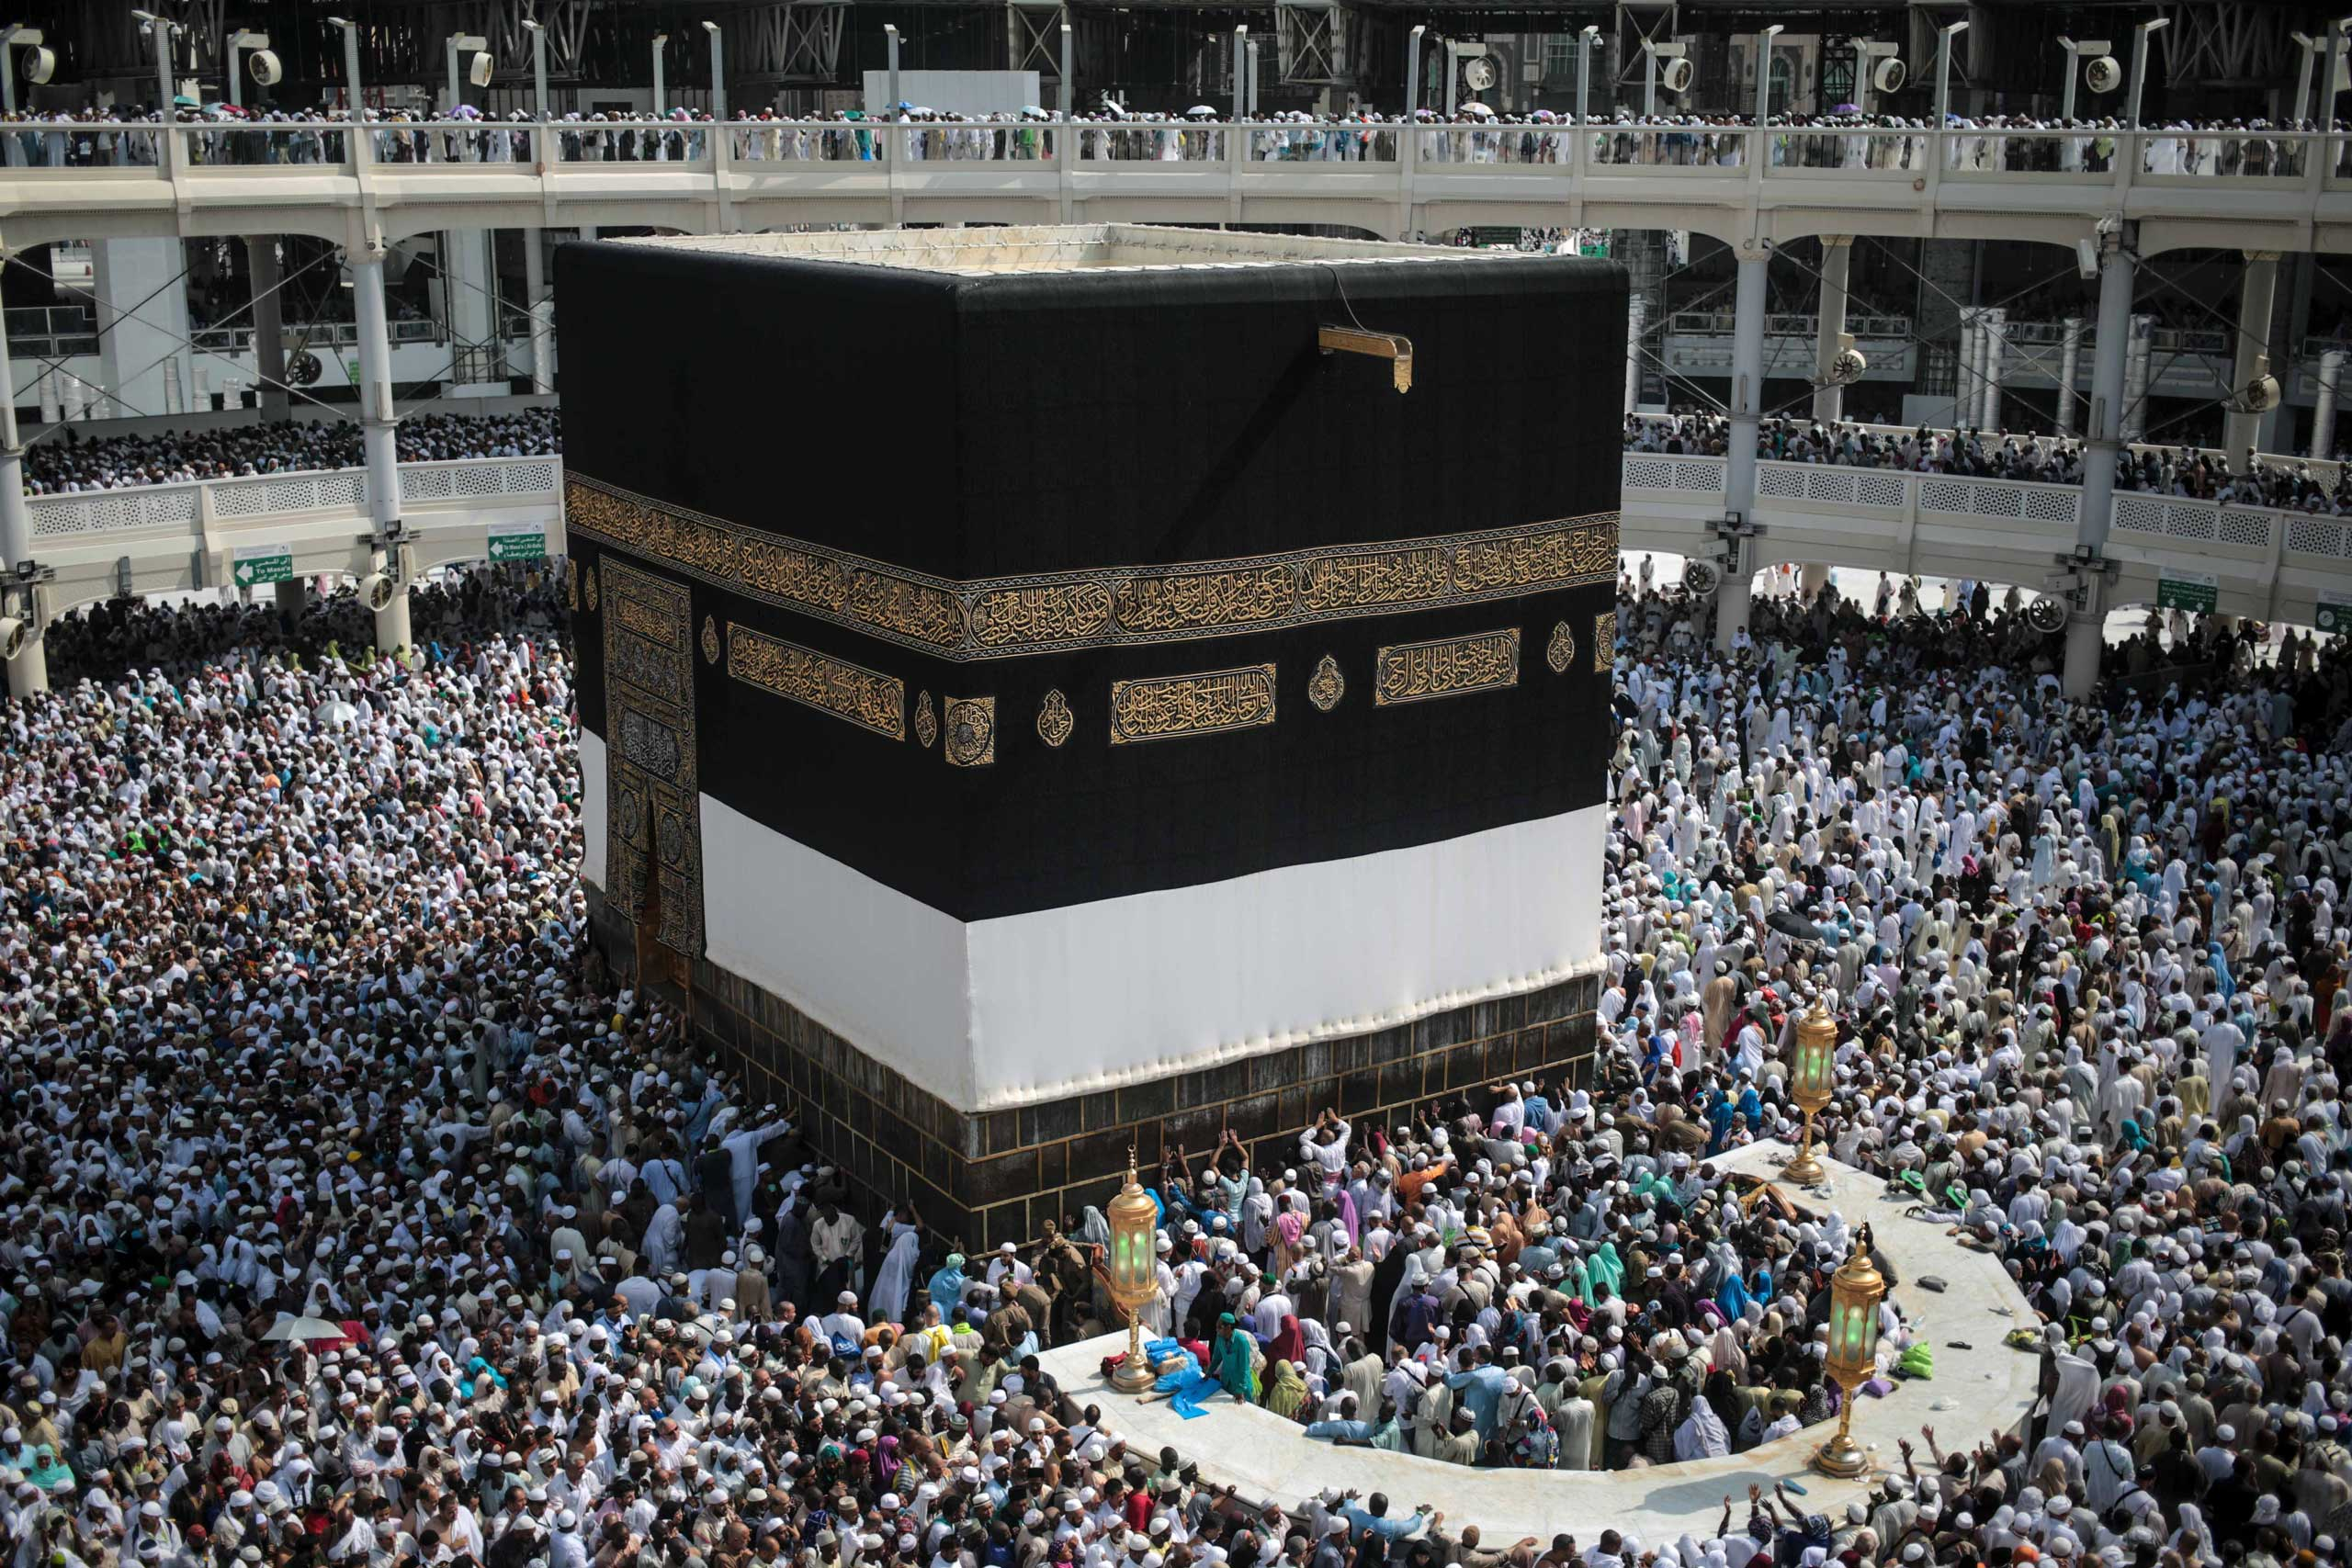 Muslim pilgrims circle the Kaaba, the cubic building at the Grand Mosque in the Muslim holy city of Mecca, Saudi Arabia, on Sept. 15, 2015.